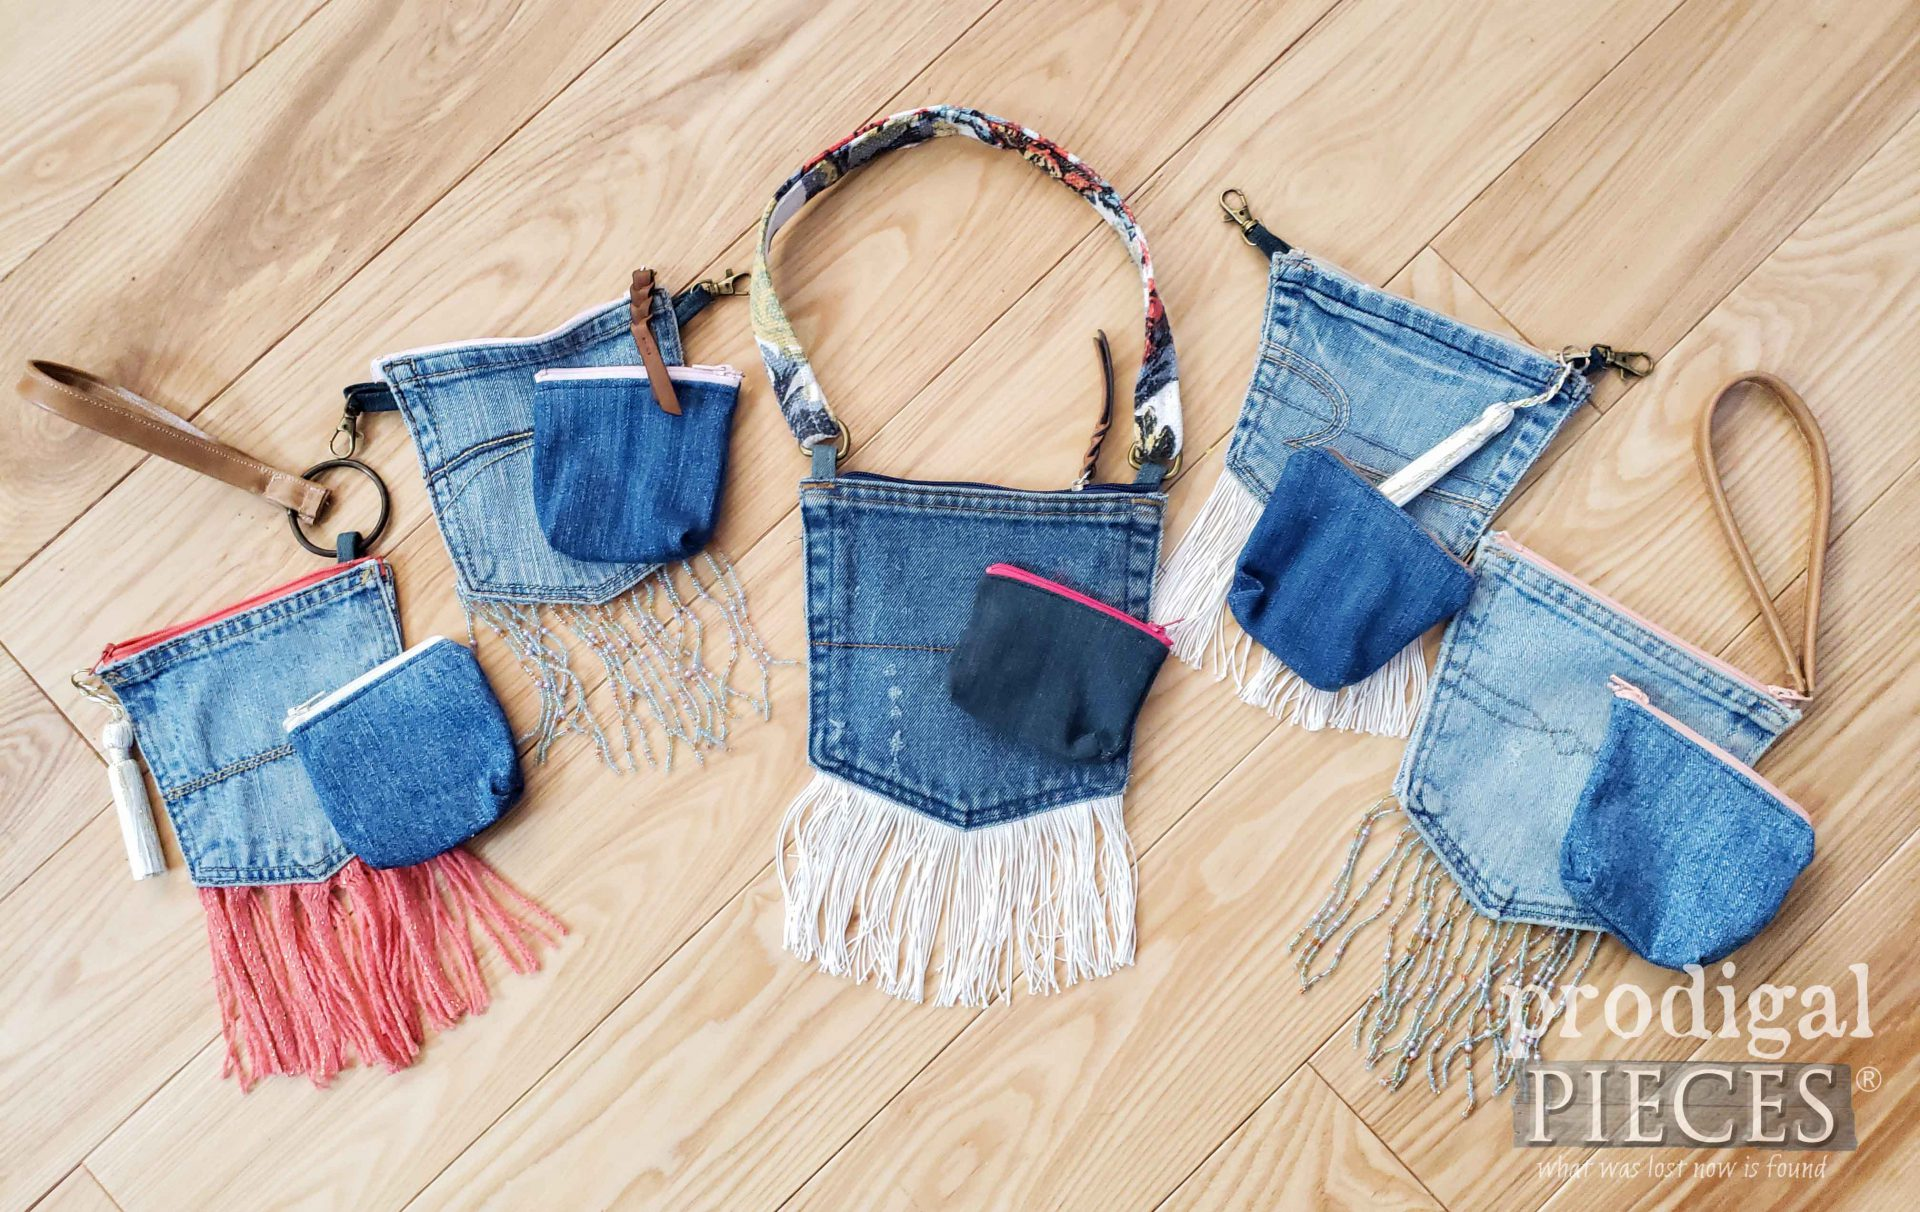 Handmade Upcycled Denim Pocket Purse Selection Created by Larissa of Prodigal Pieces | prodigalpieces.com #prodigalpieces #diy #handmade #crafts #fashion #style #boho #farmhouse